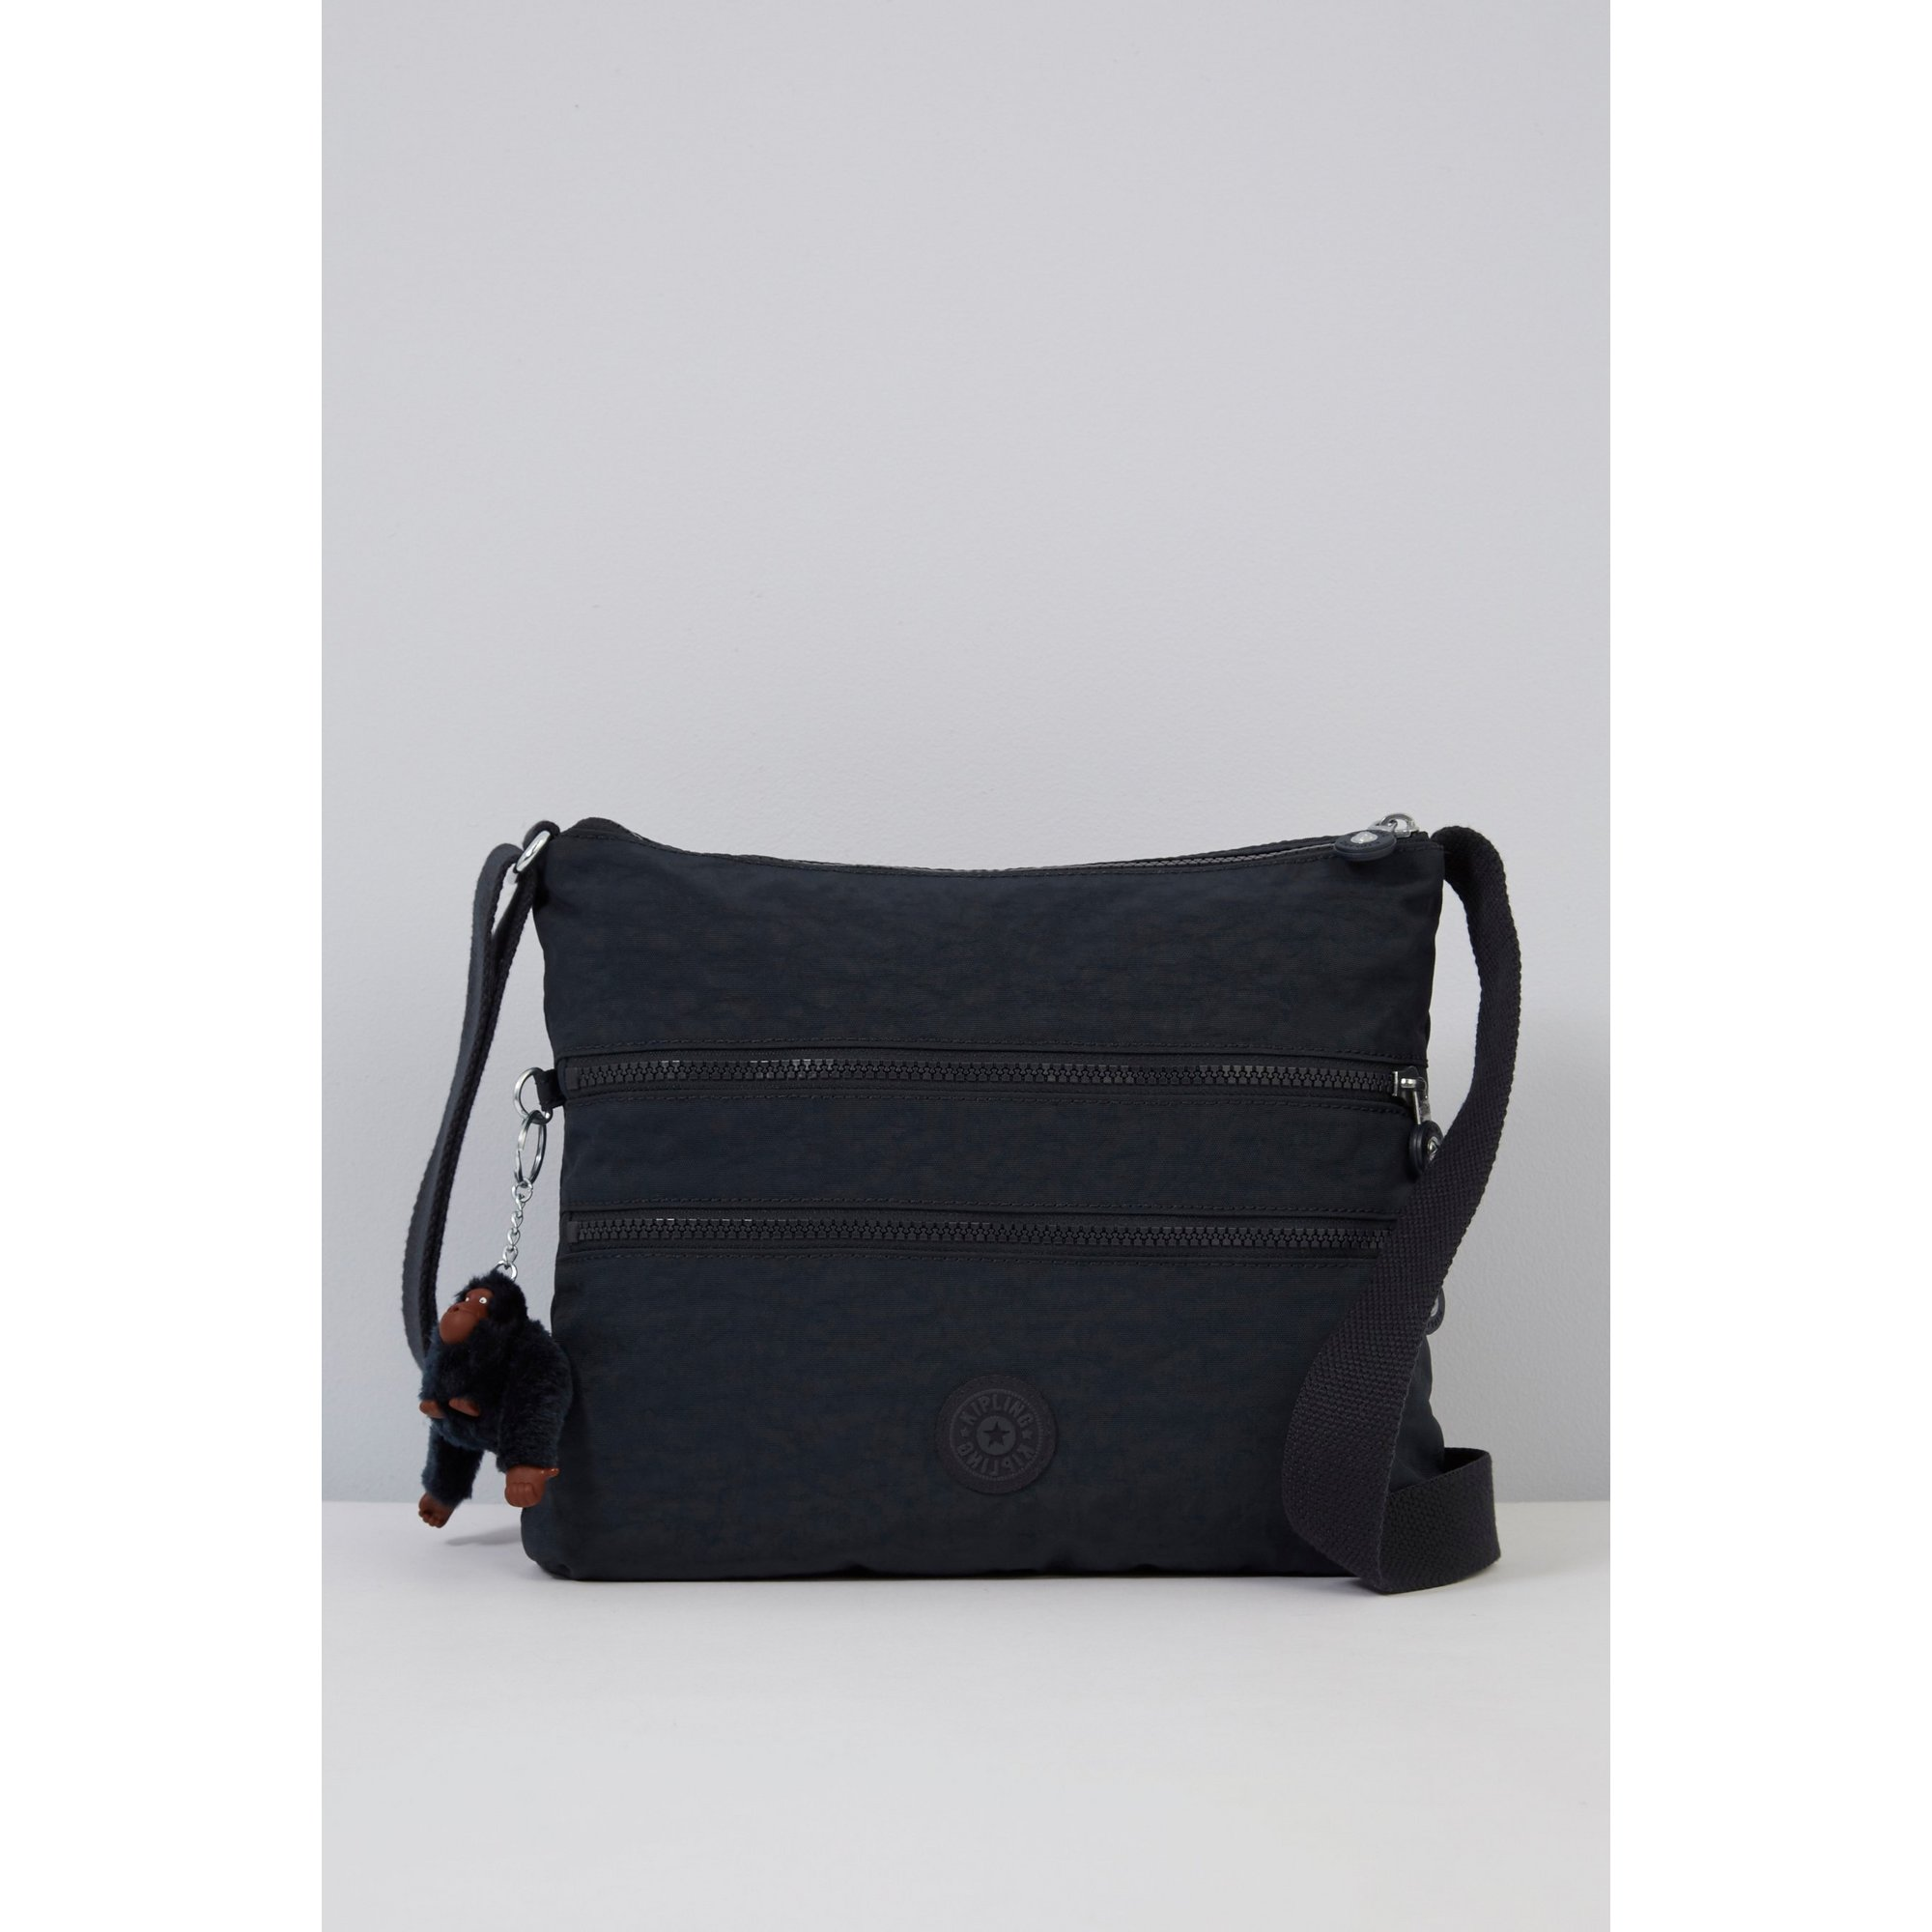 Image of Kipling Alvar Cross Body True Navy Bag